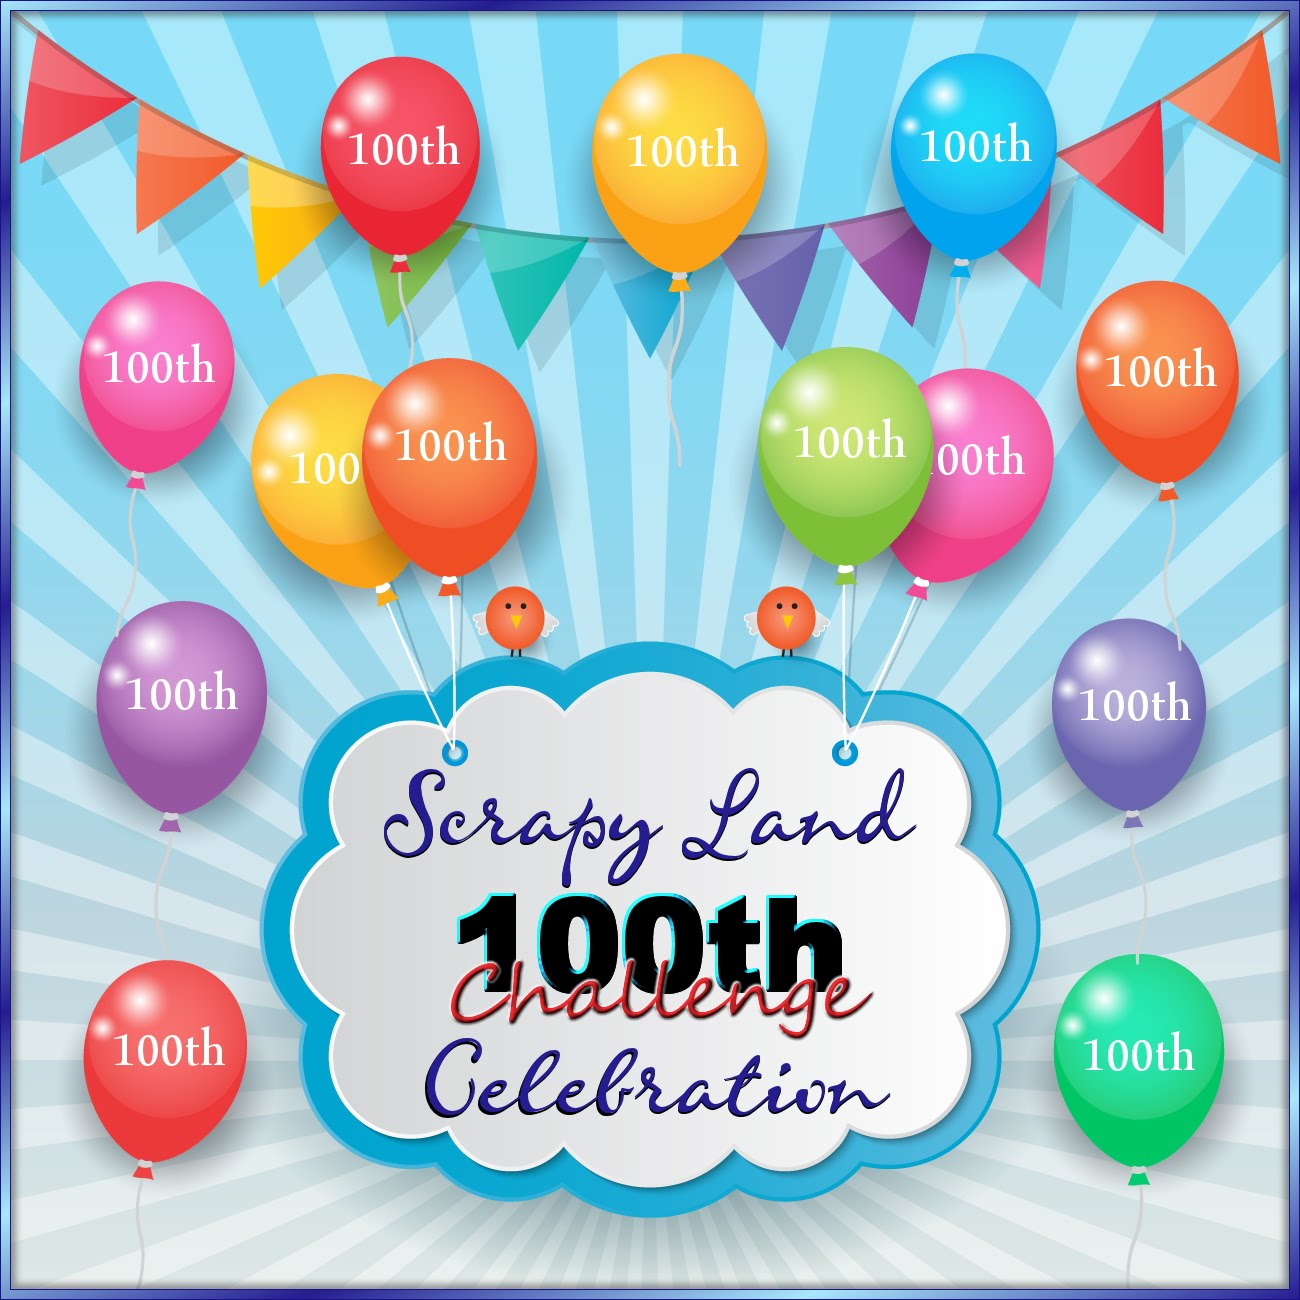 Scrapy Land 100th Challenge Celebrations